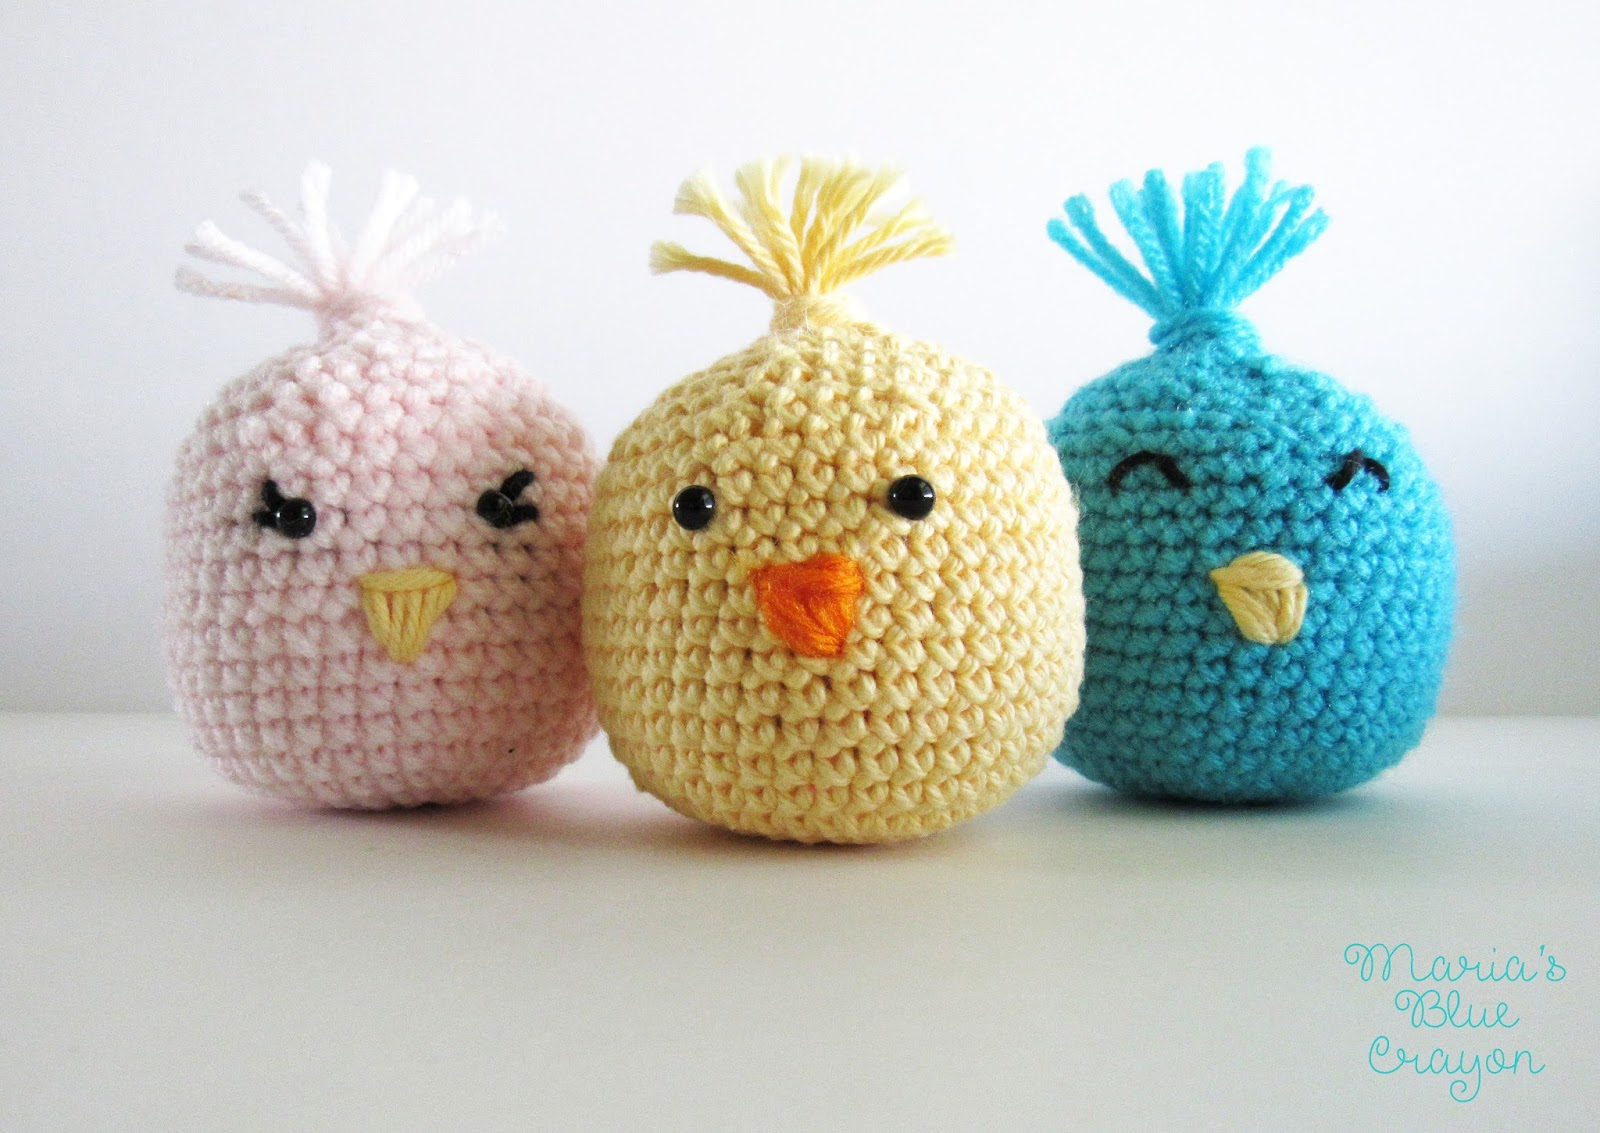 Amigurumi Hatching Easter Chicks Free Crochet Pattern - Cool ... | 1133x1600